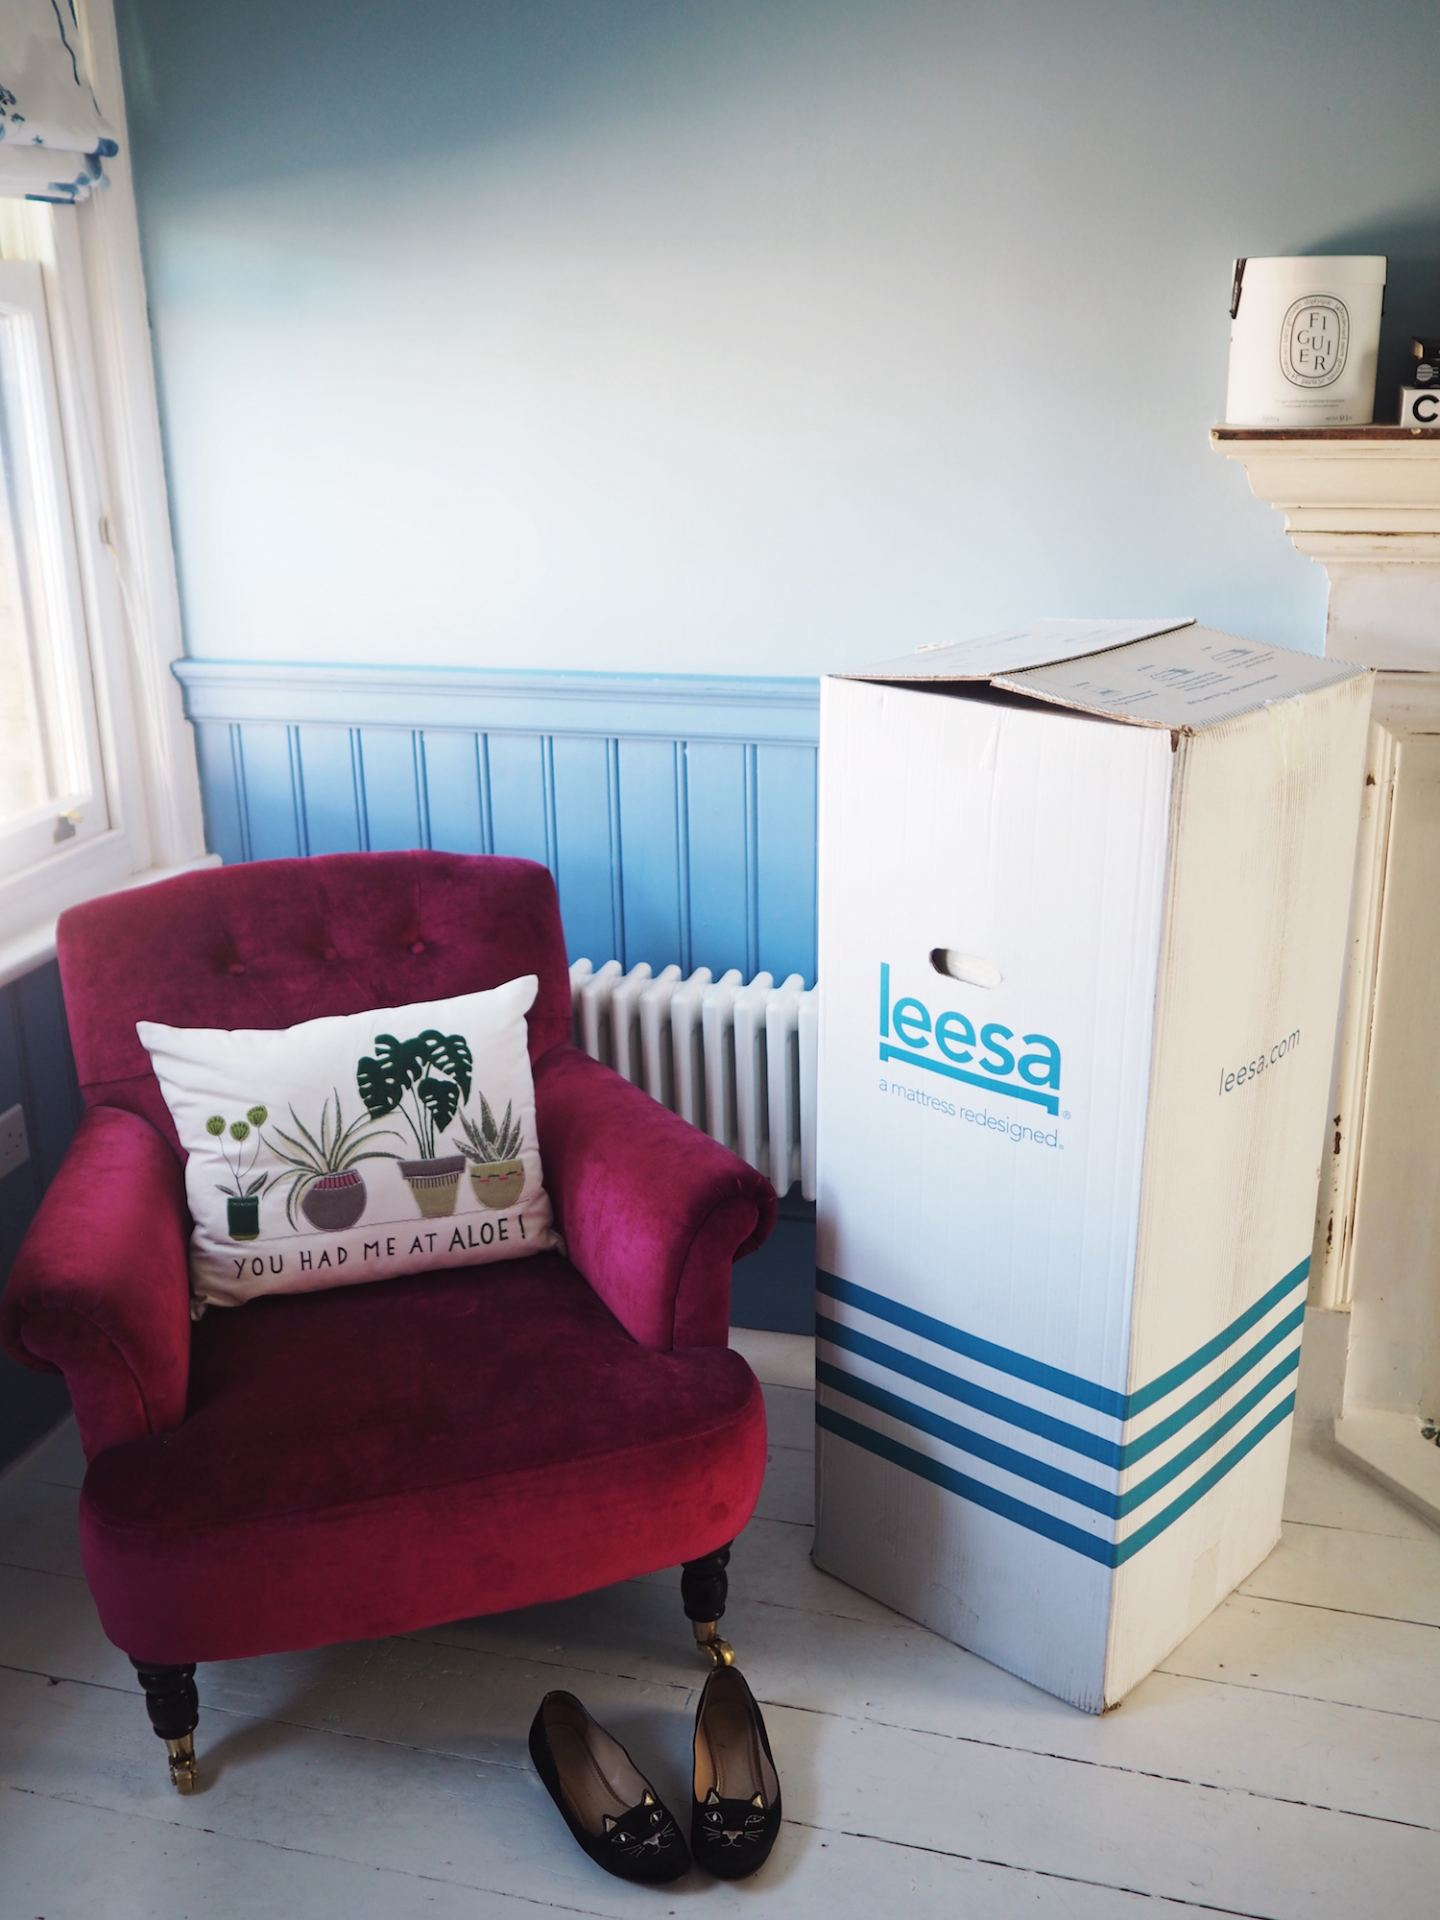 leesa matress in a box